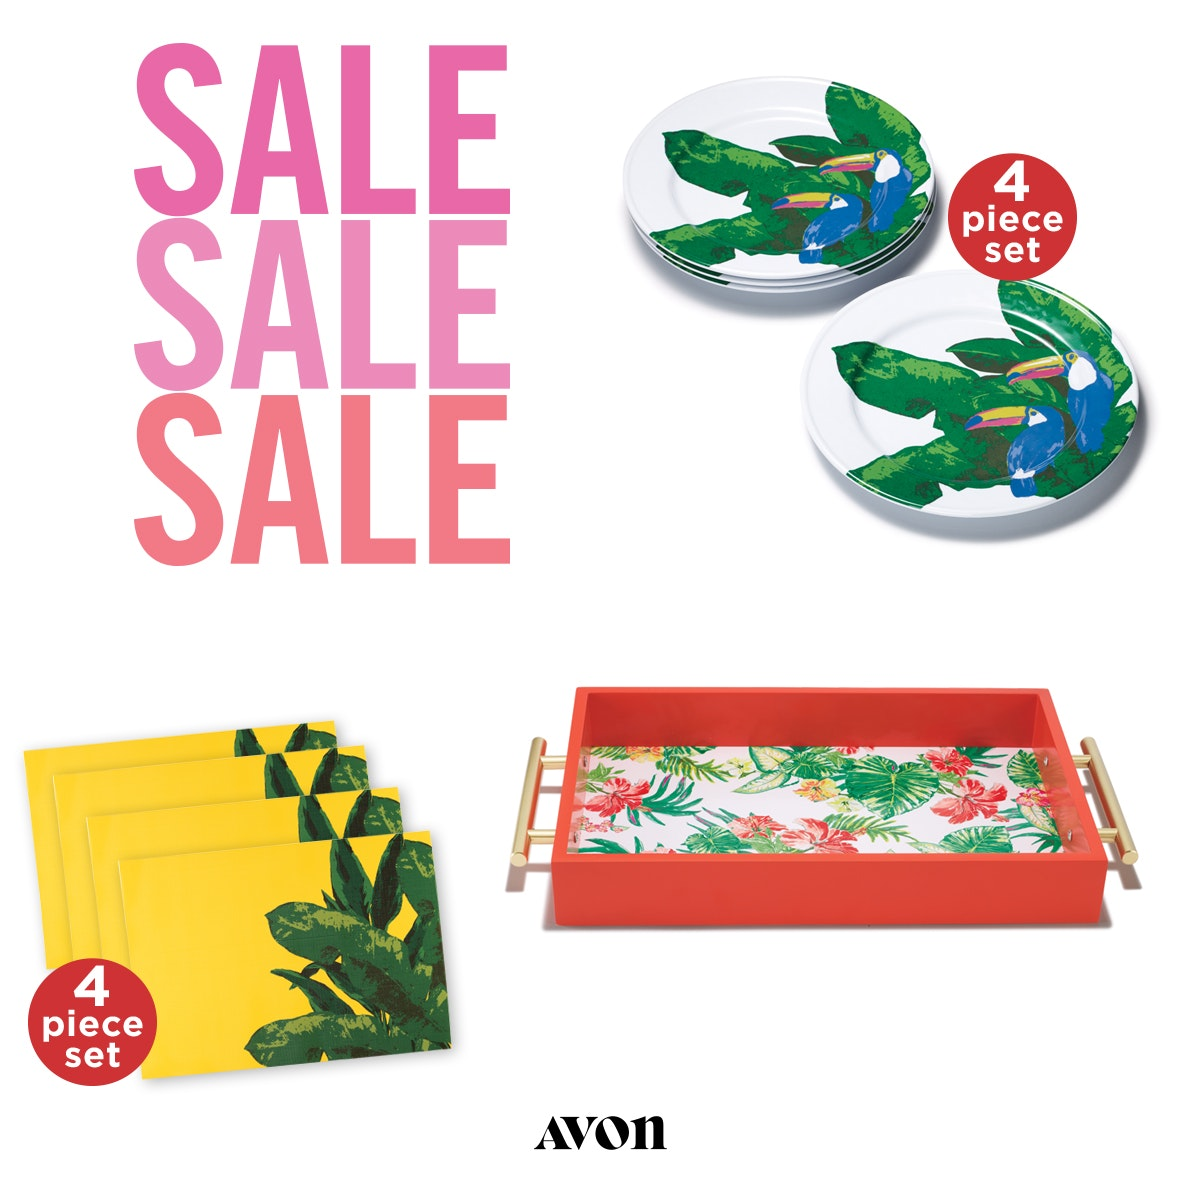 Avon Outlet Sale up to 65% off!